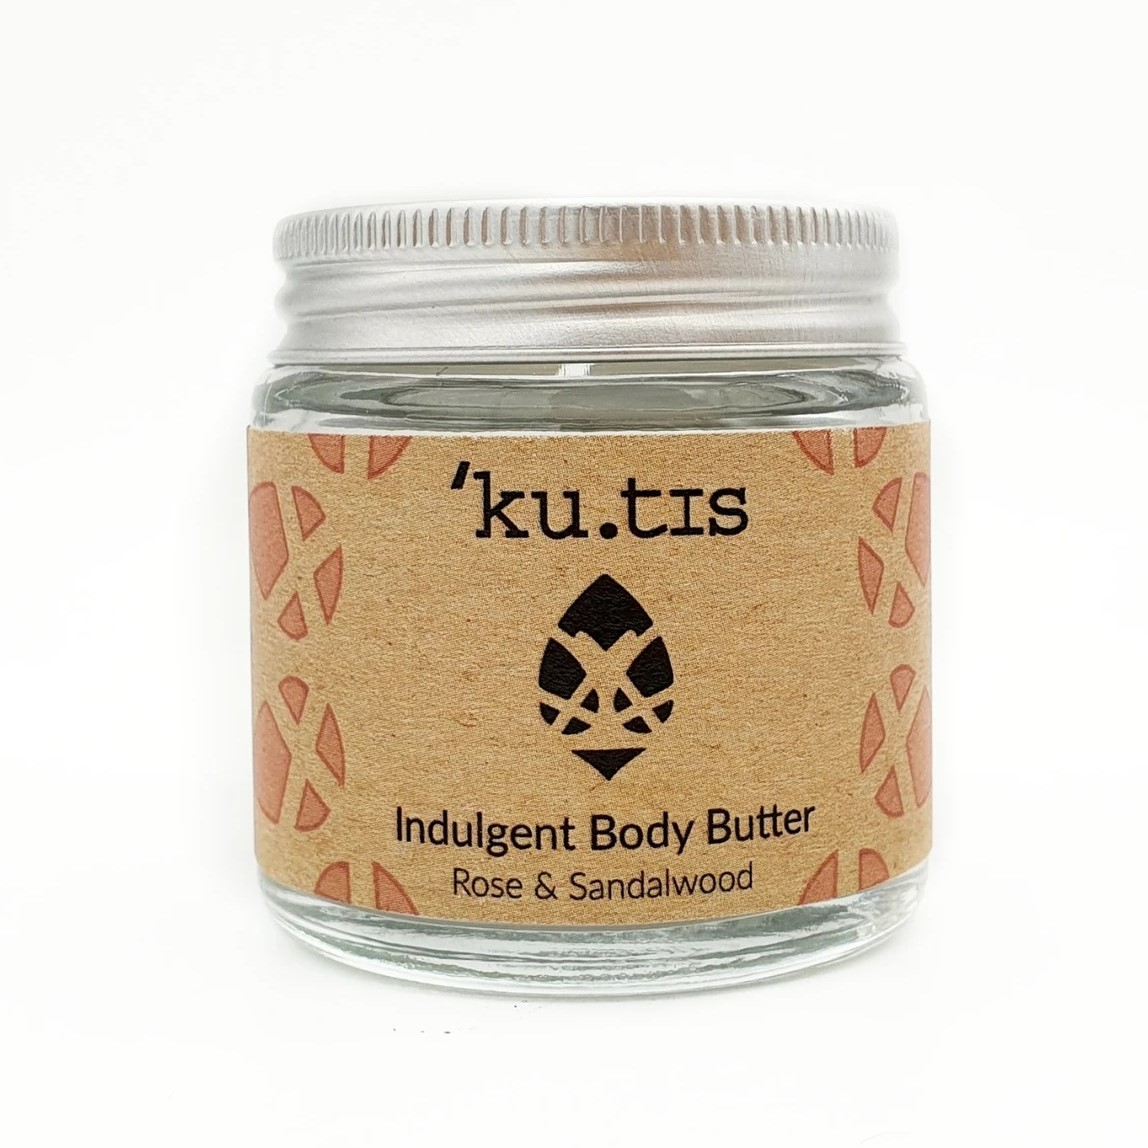 Body Butter (30g) by Ku.tis (Organic)